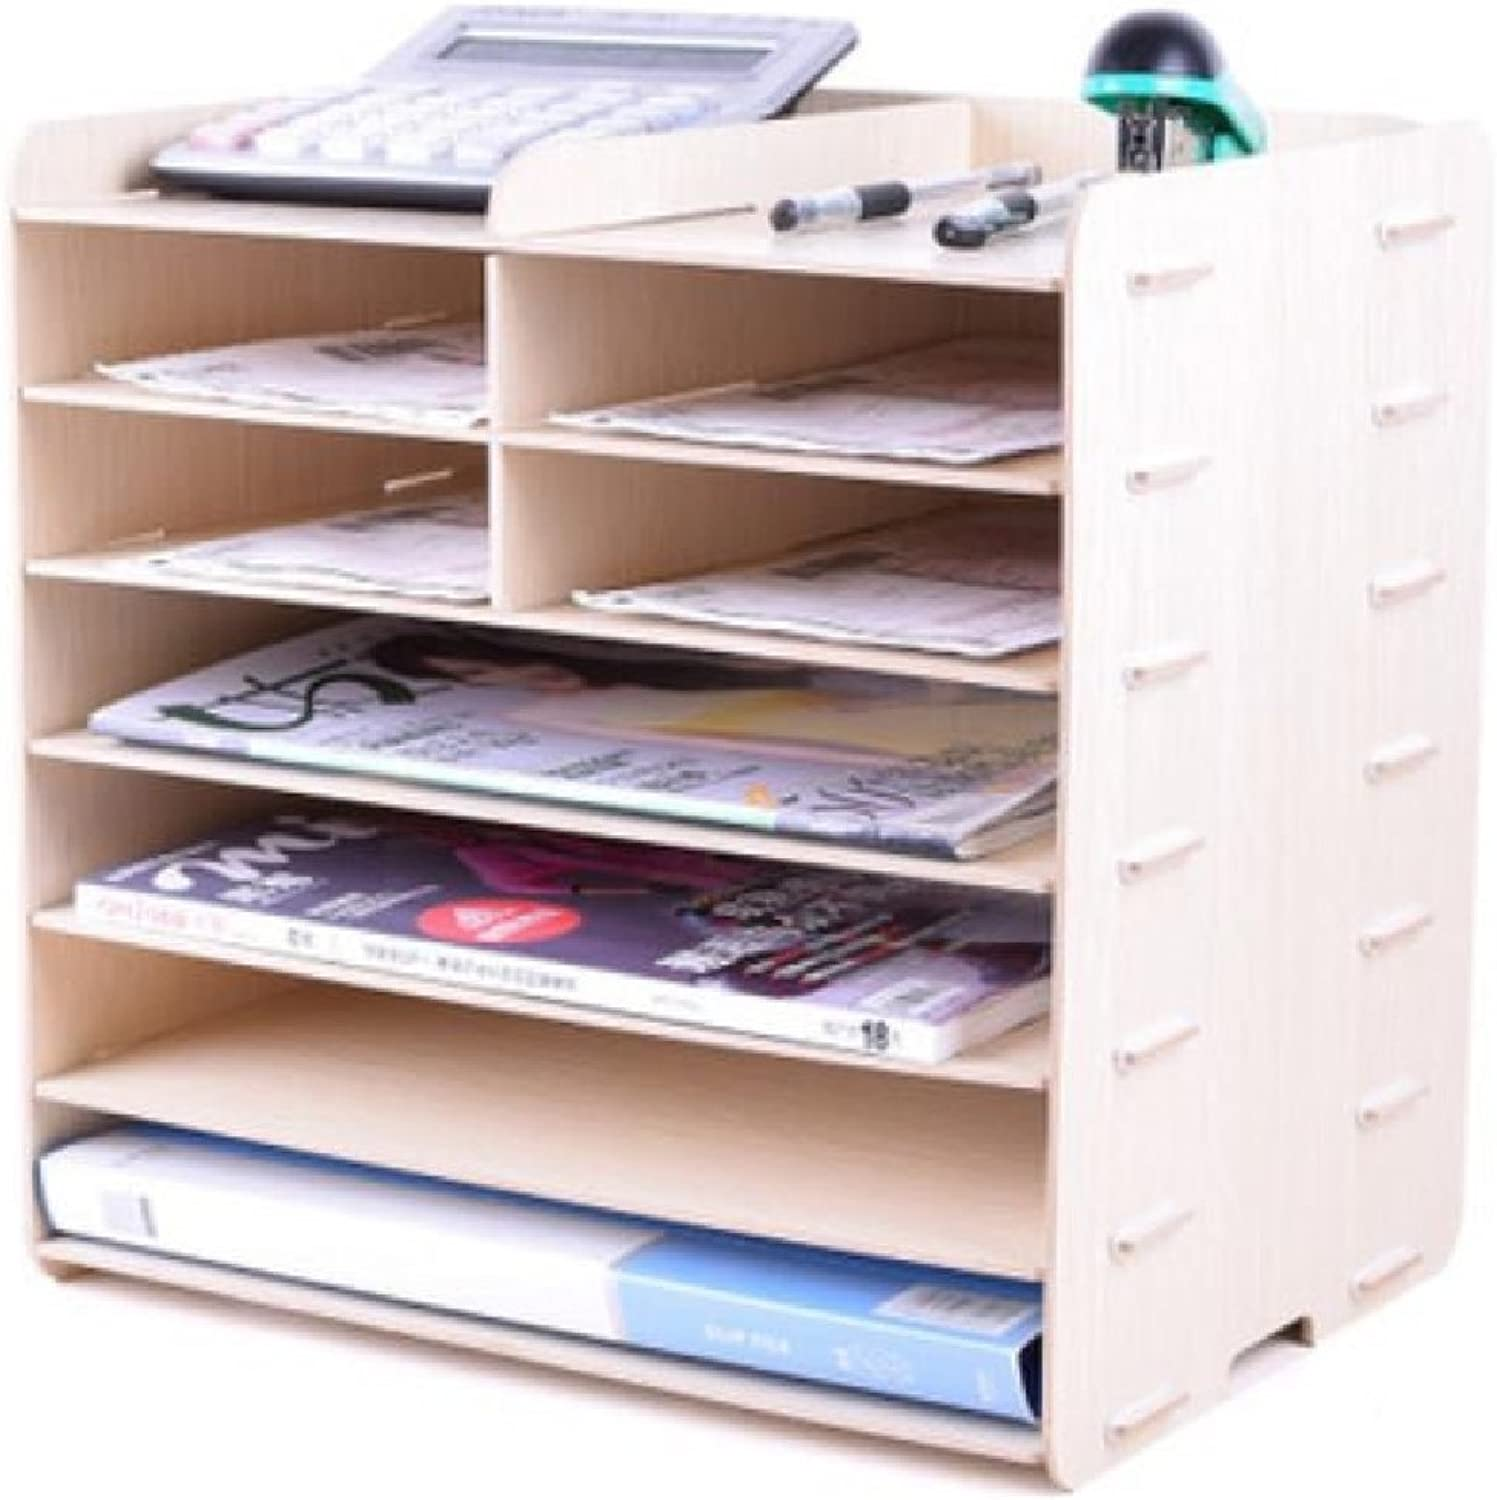 Freely Shelving Unit Solid Heavy Duty Embellished Purpose Wall Mounted Counter Shelf AS3 7 Shelves